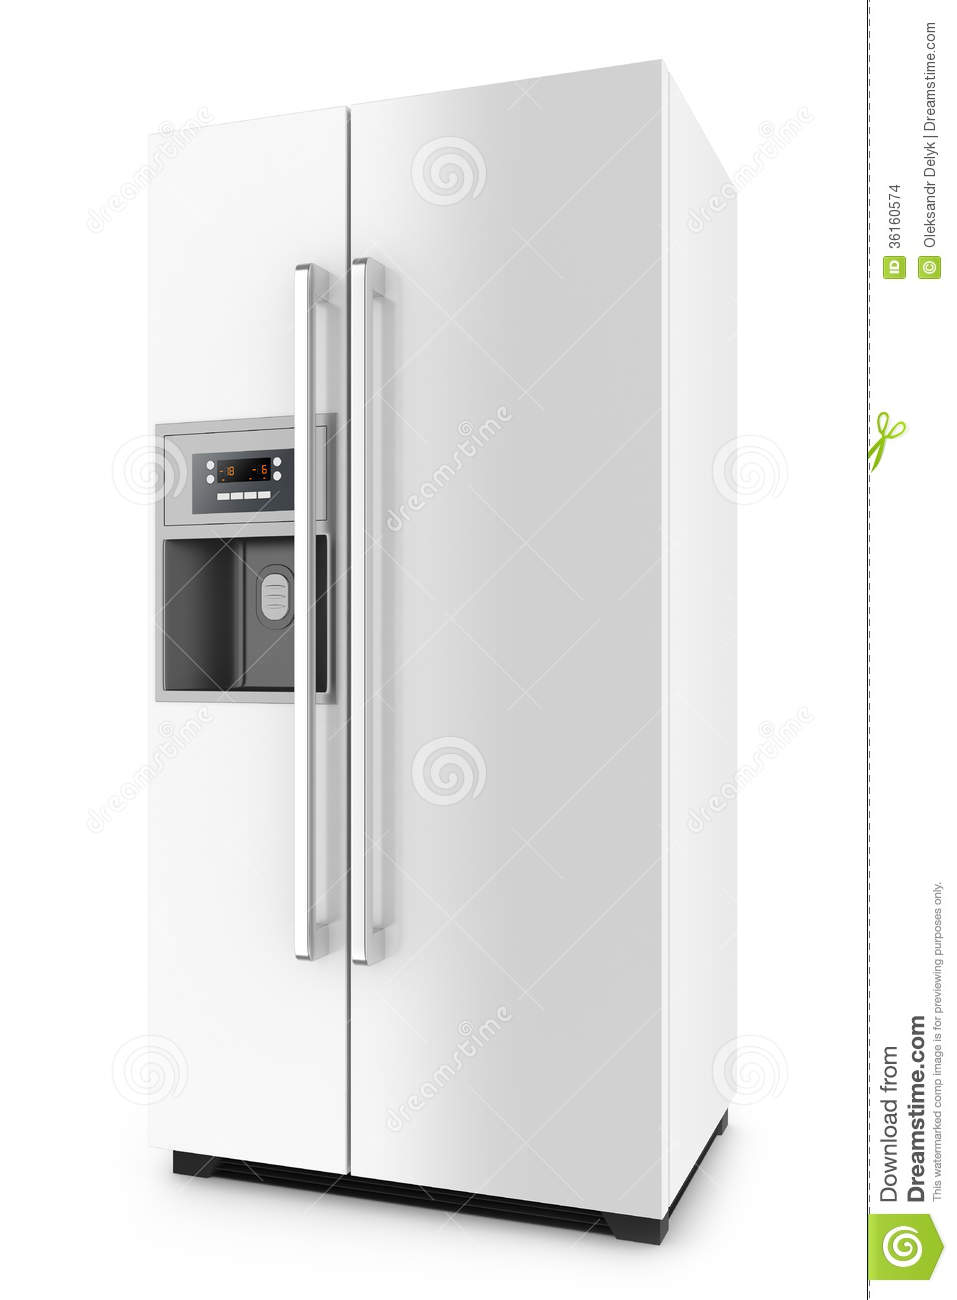 White Fridge With Side-by-side Door System Stock Illustration ...